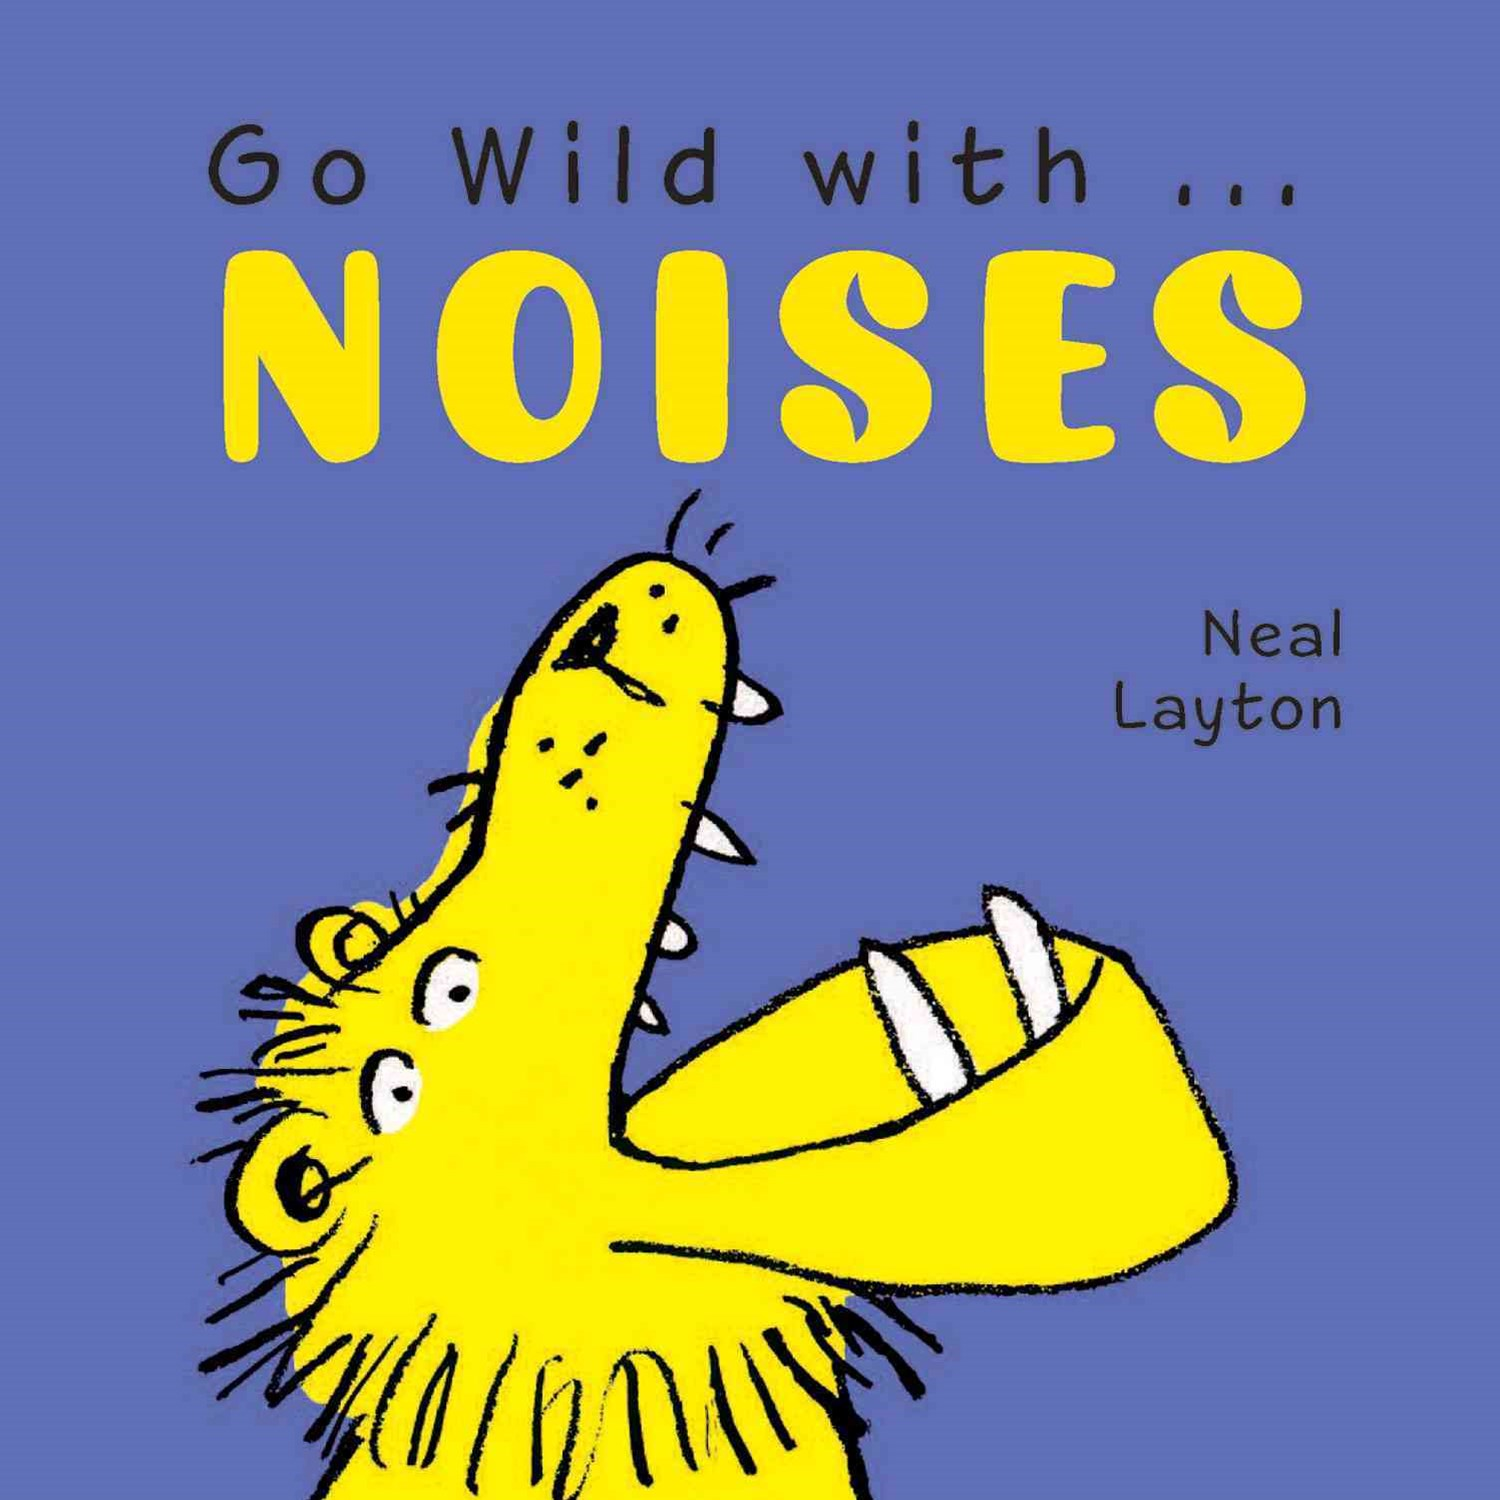 Go Wild with Noises